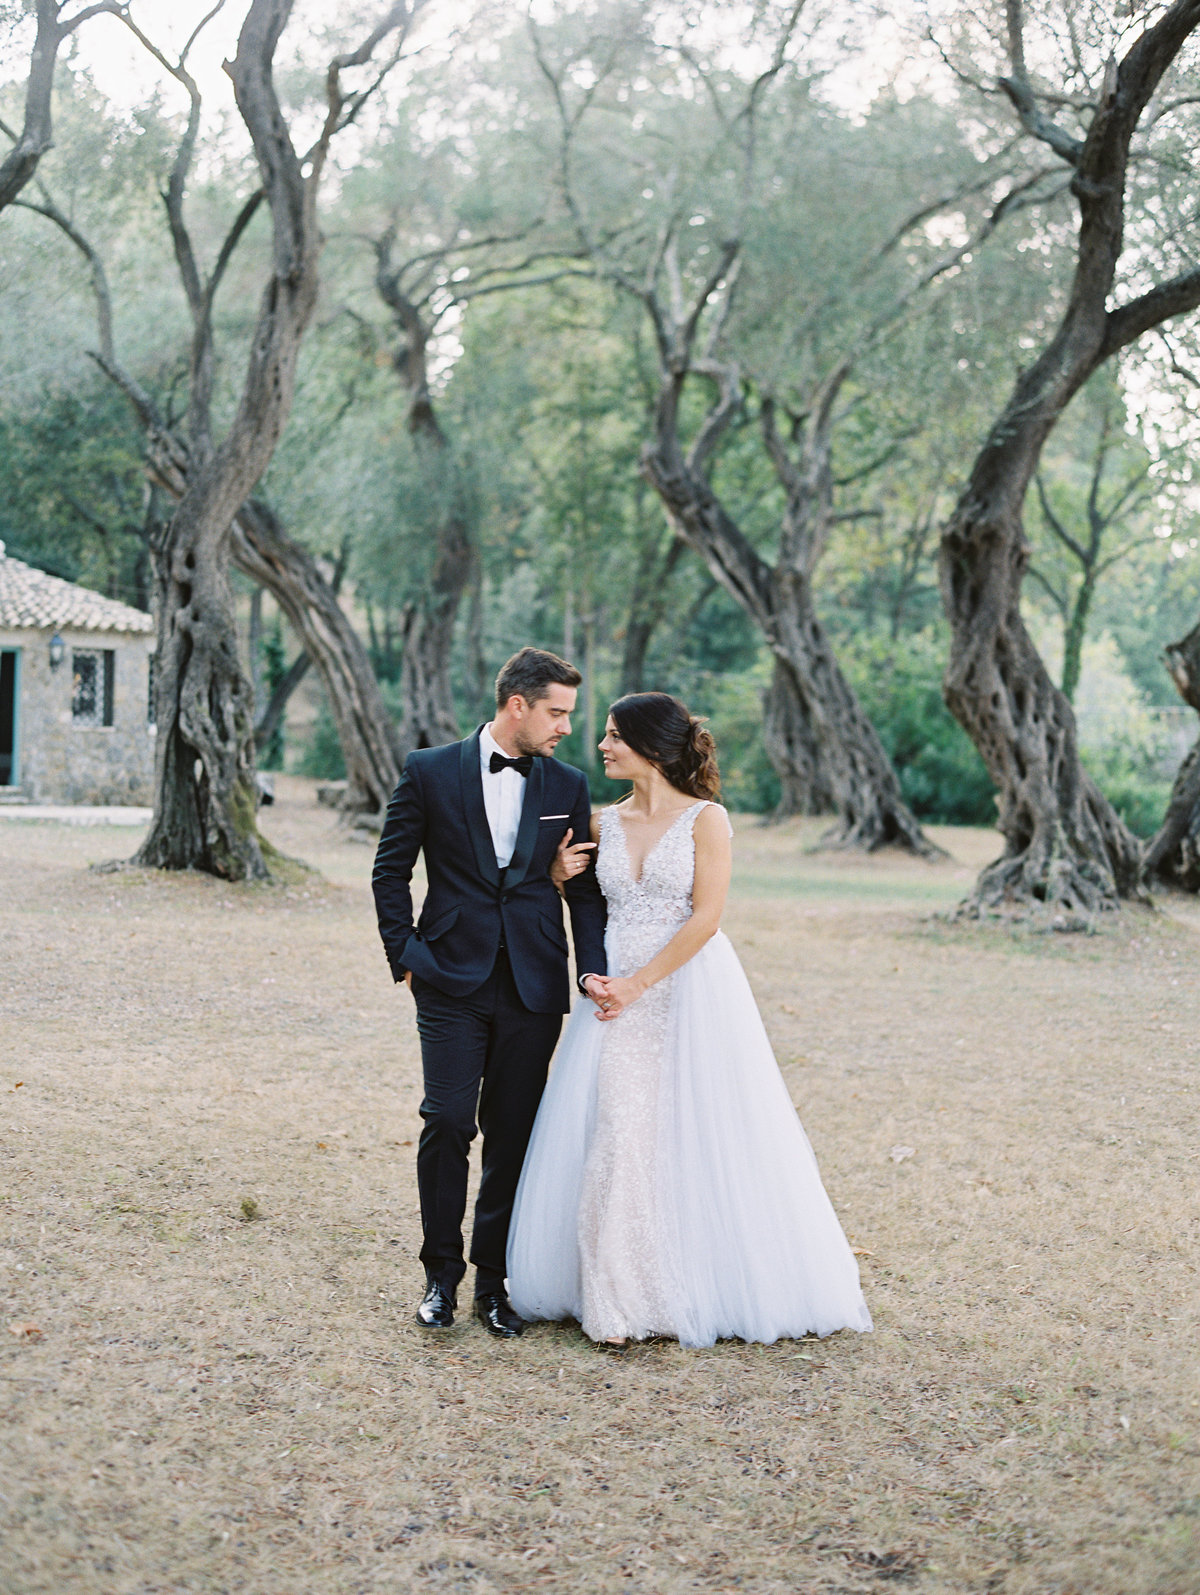 fine art wedding photography in corfu by Kostis Mouselimis on film_053